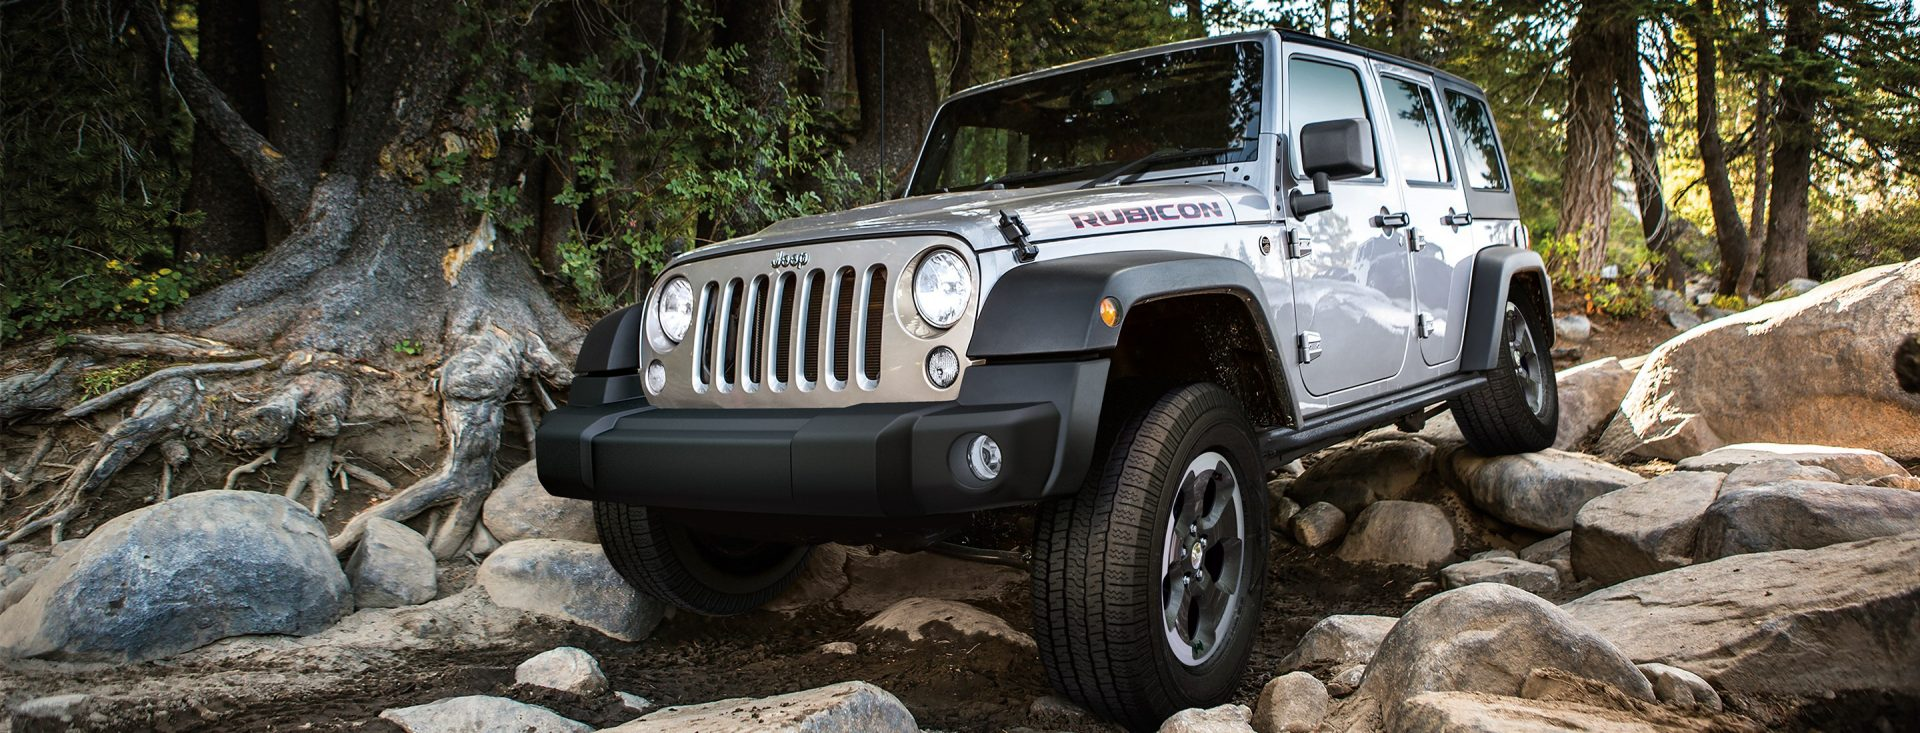 jeep wrangler unlimited prices and specifications jeep australia. Black Bedroom Furniture Sets. Home Design Ideas